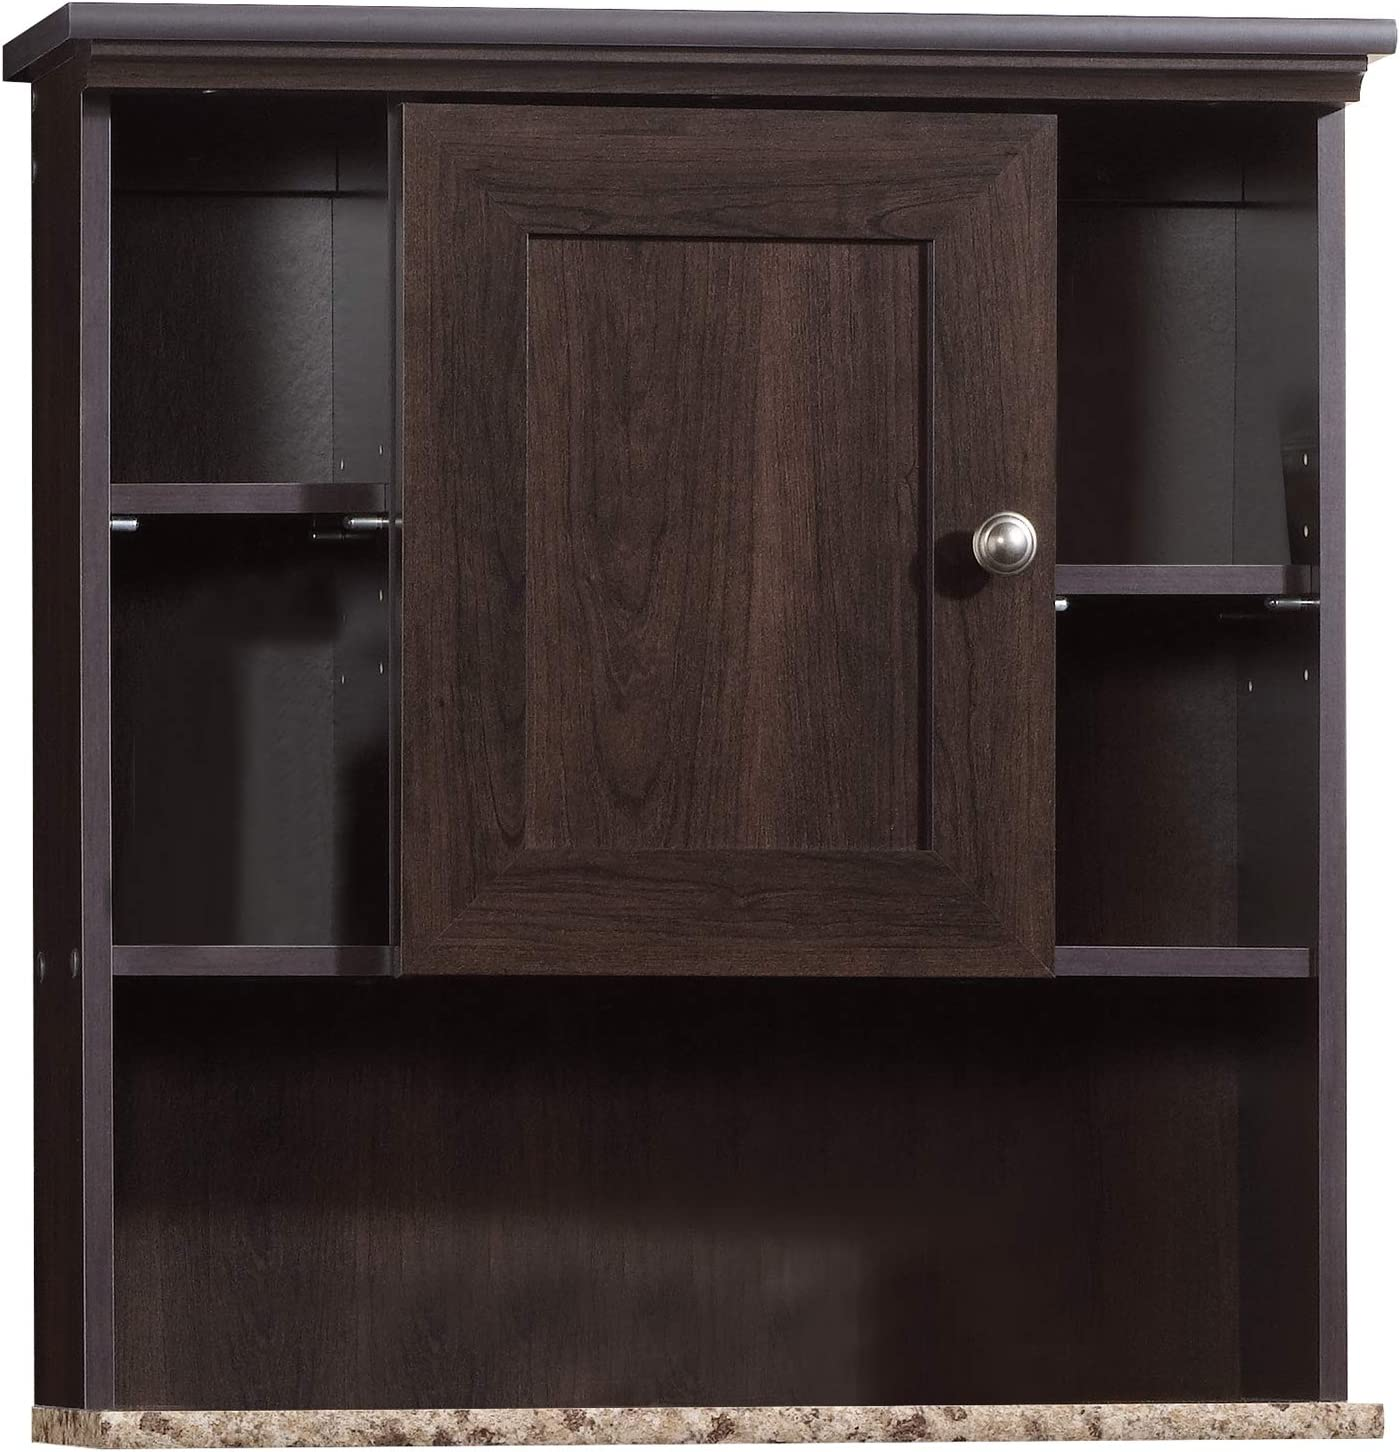 Sauder bathroom cabinet